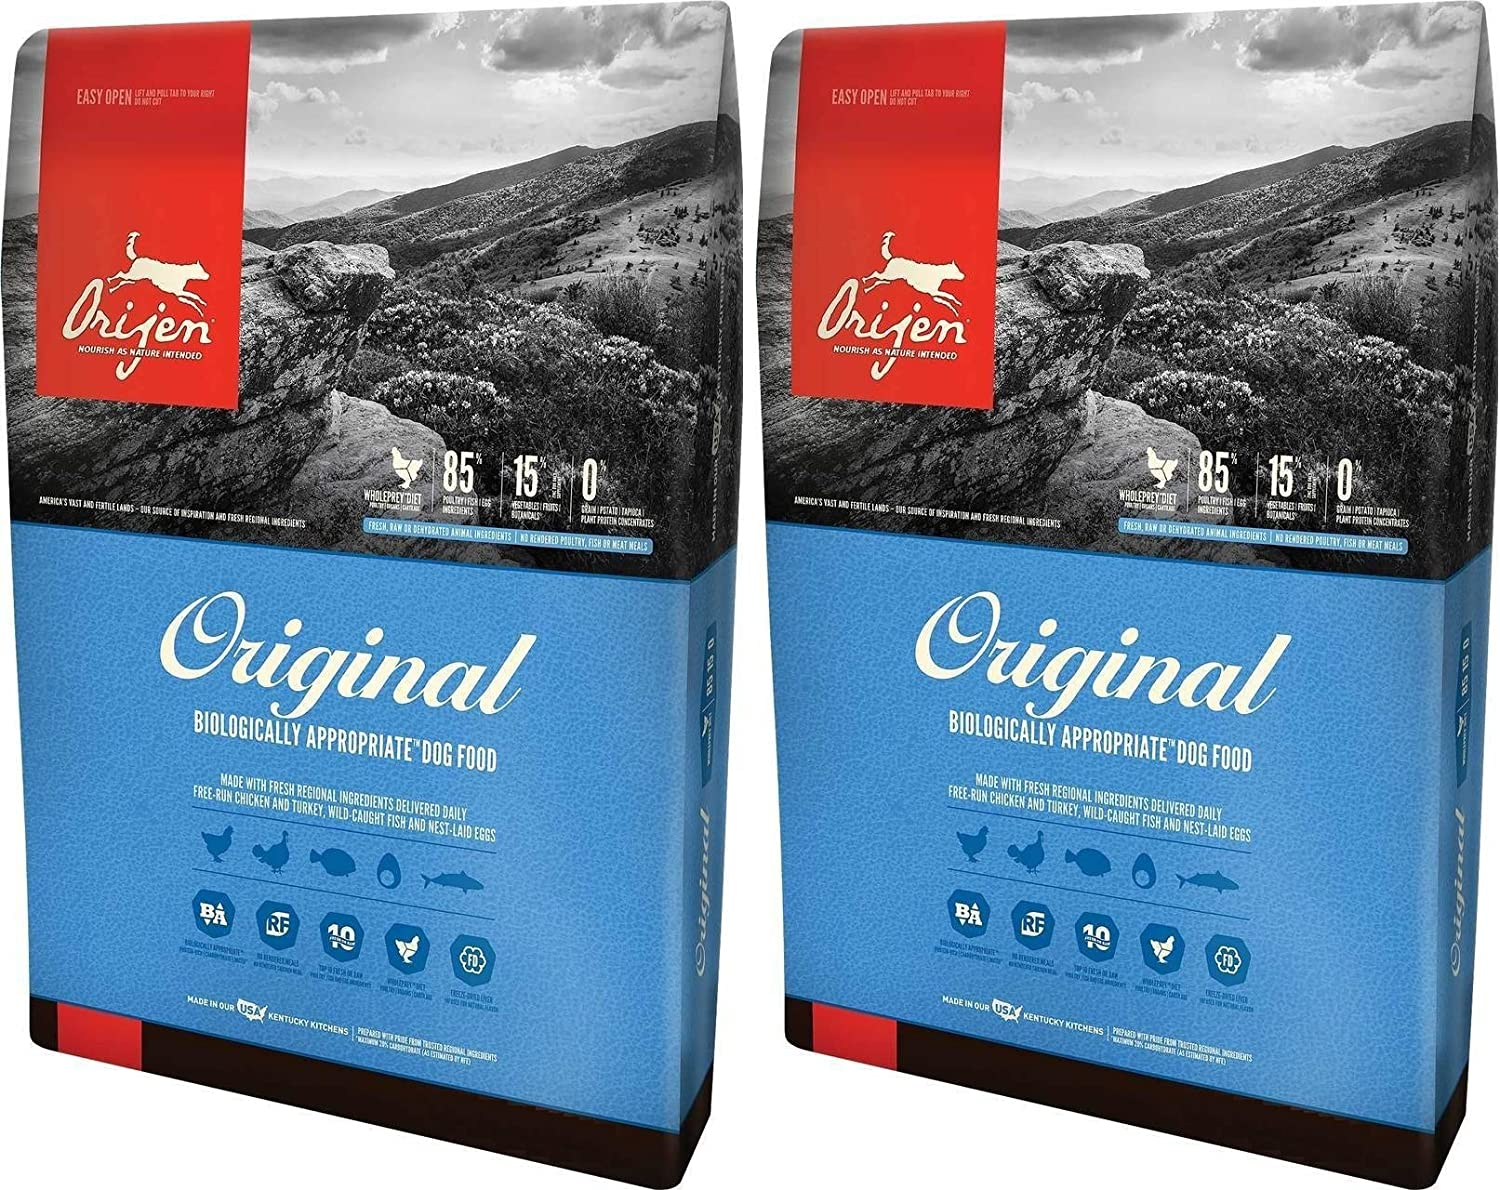 (2 Pack) Orijen Original Dry Dog Food, 4.5 lb Per Bag 819MGV6OLFL